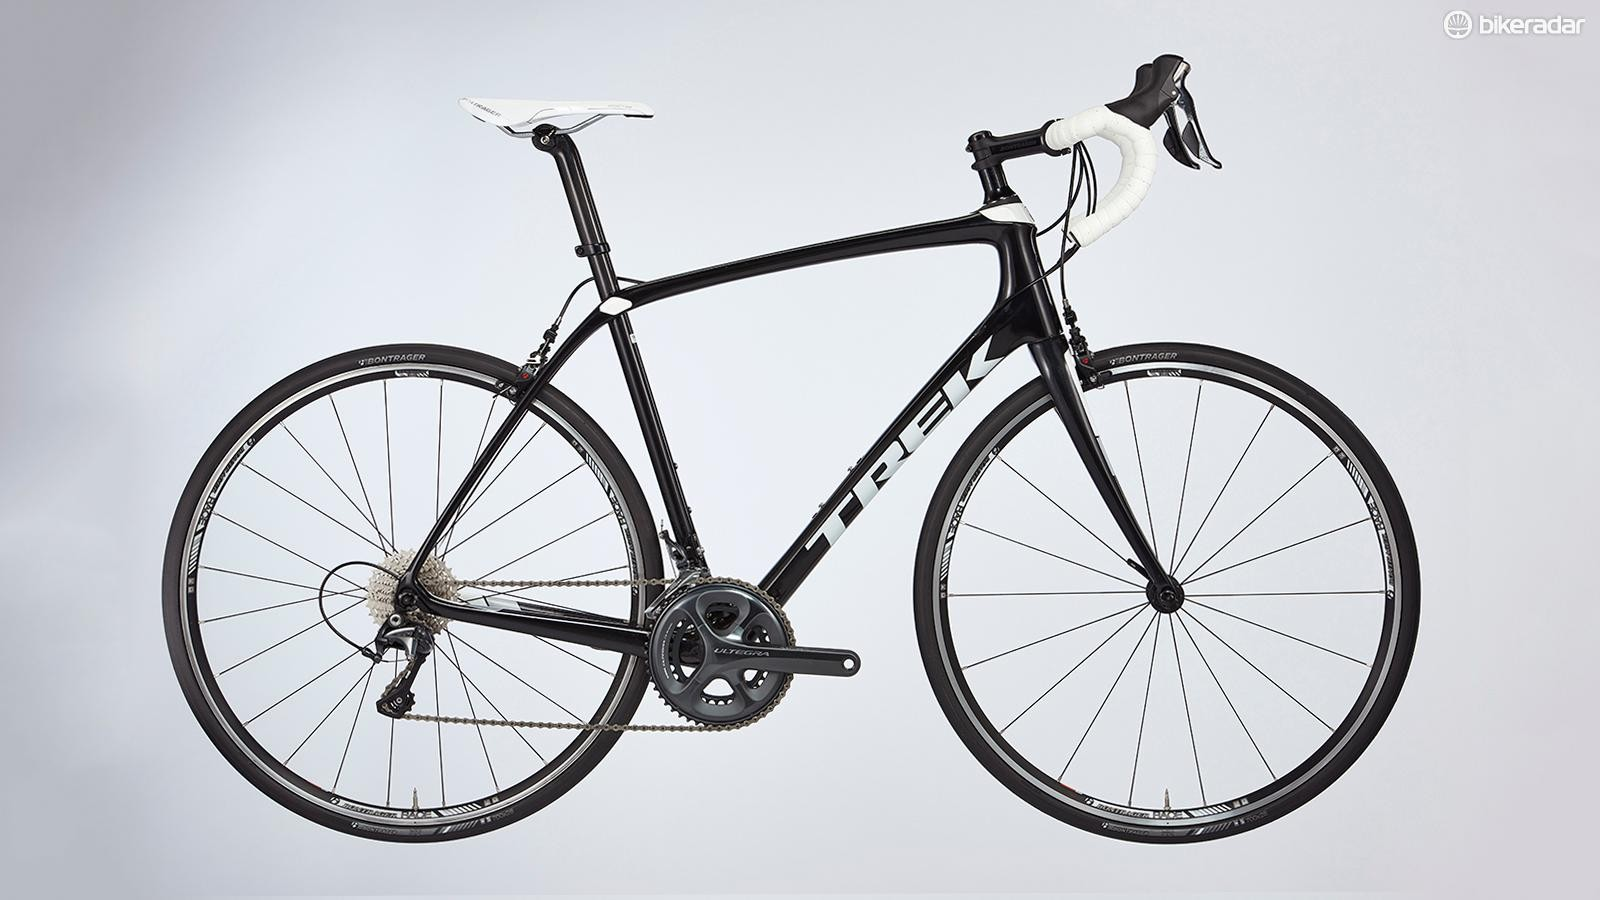 The Trek Domane now gets IsoSpeed at both ends